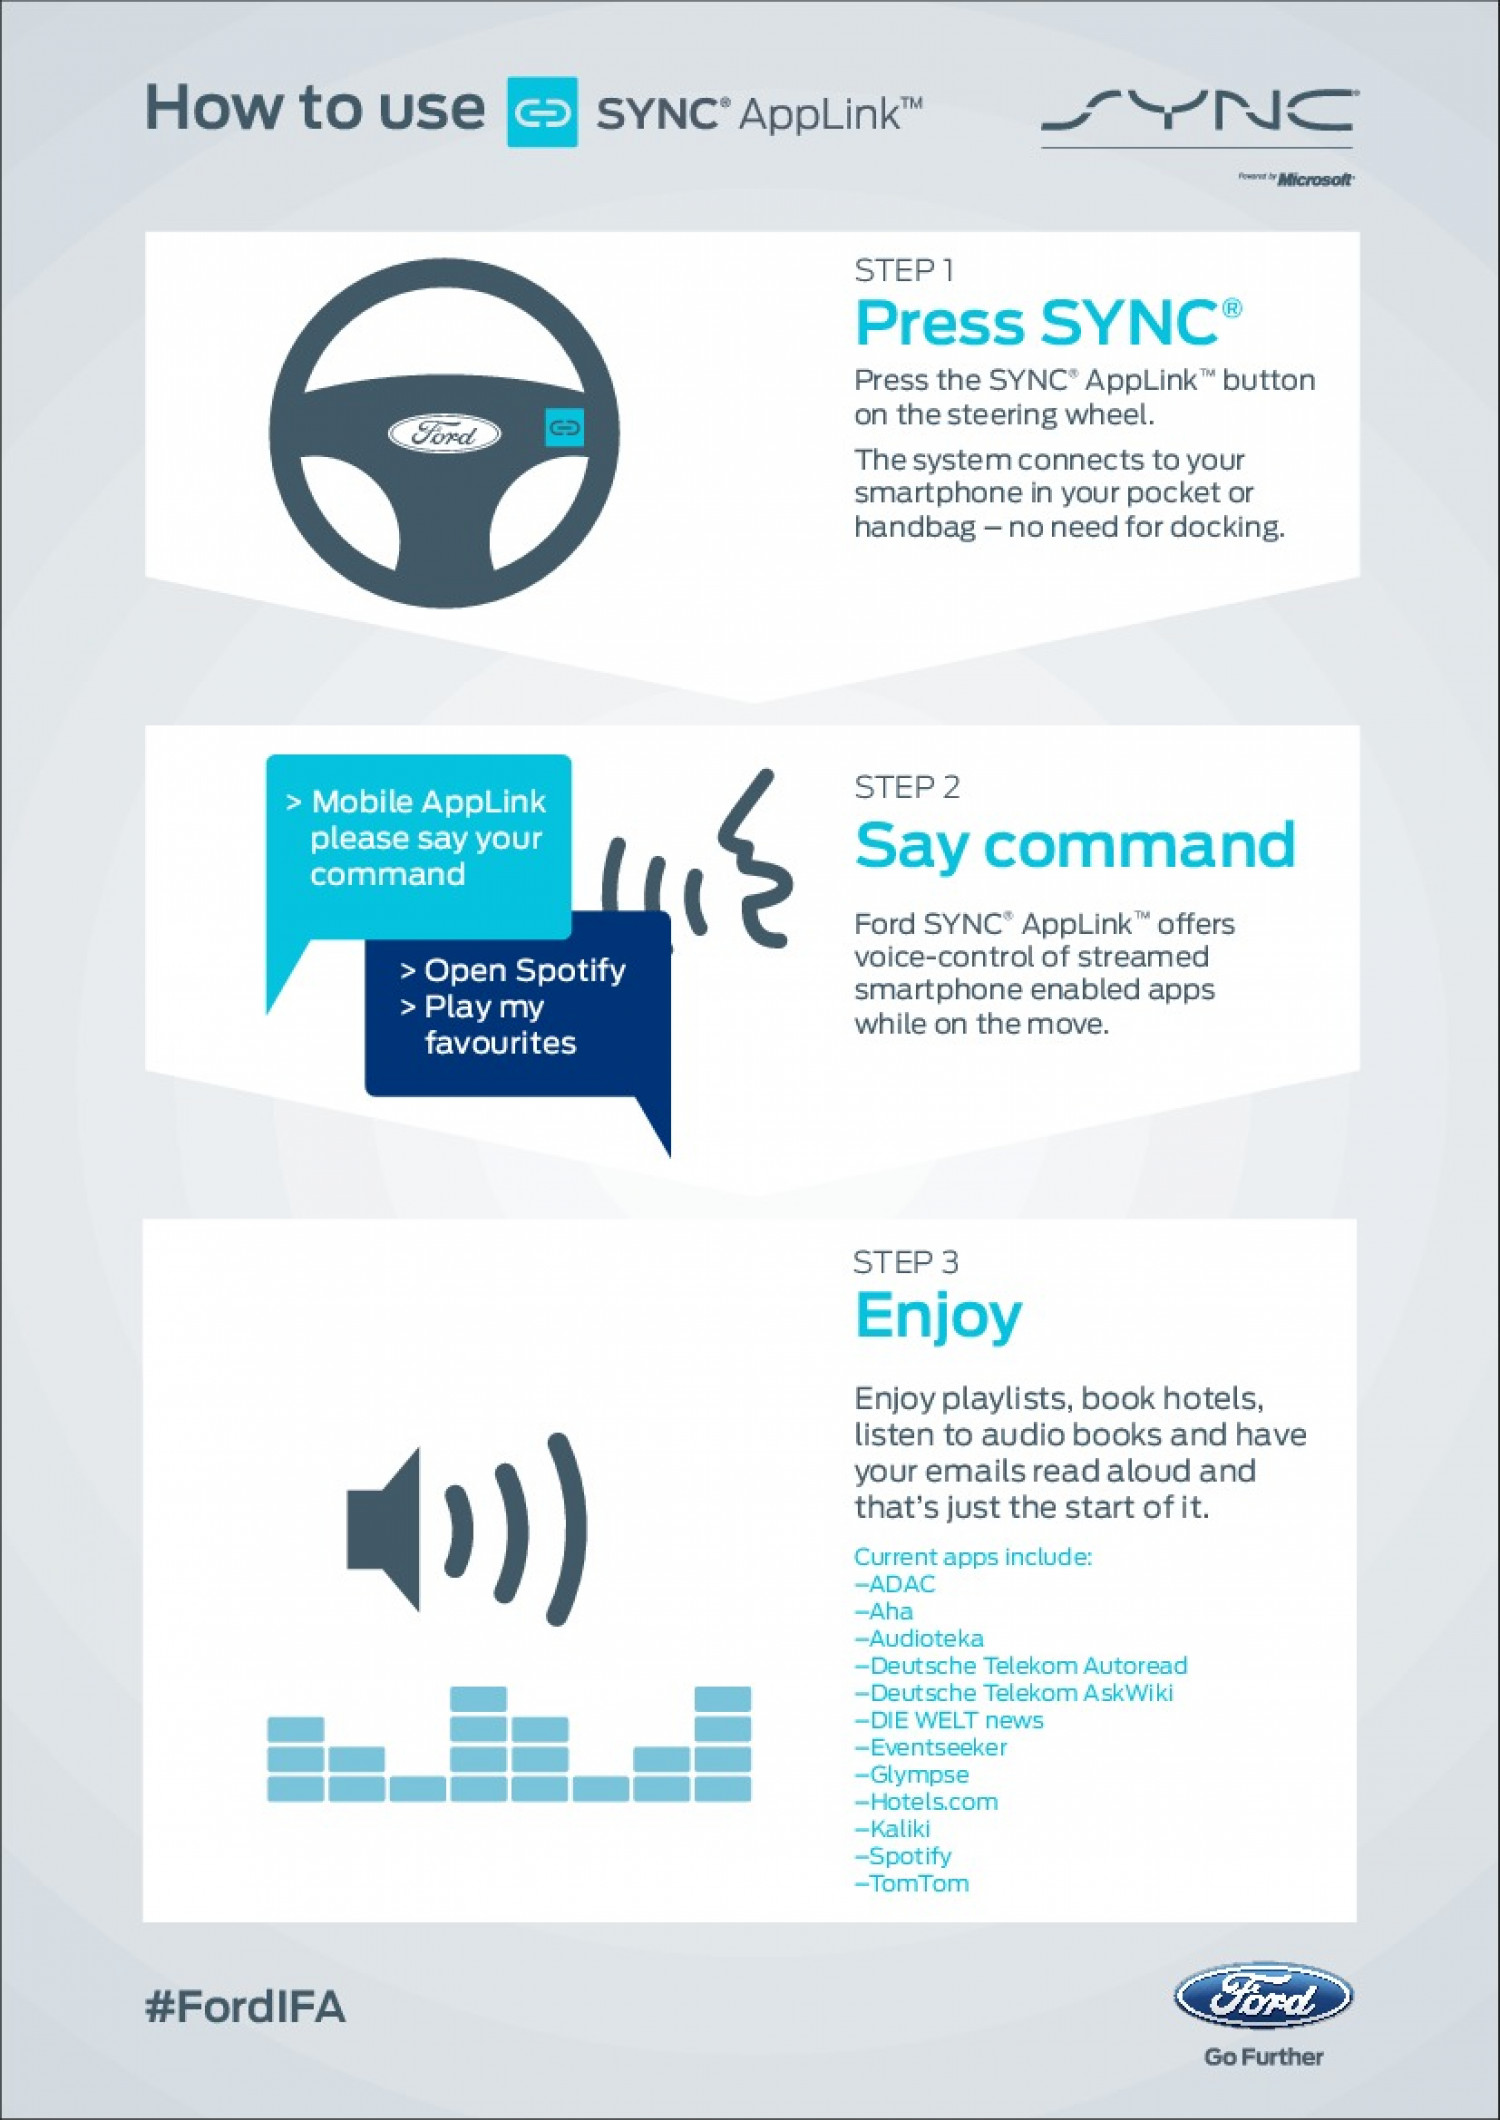 How to use SYNC AppLink Infographic